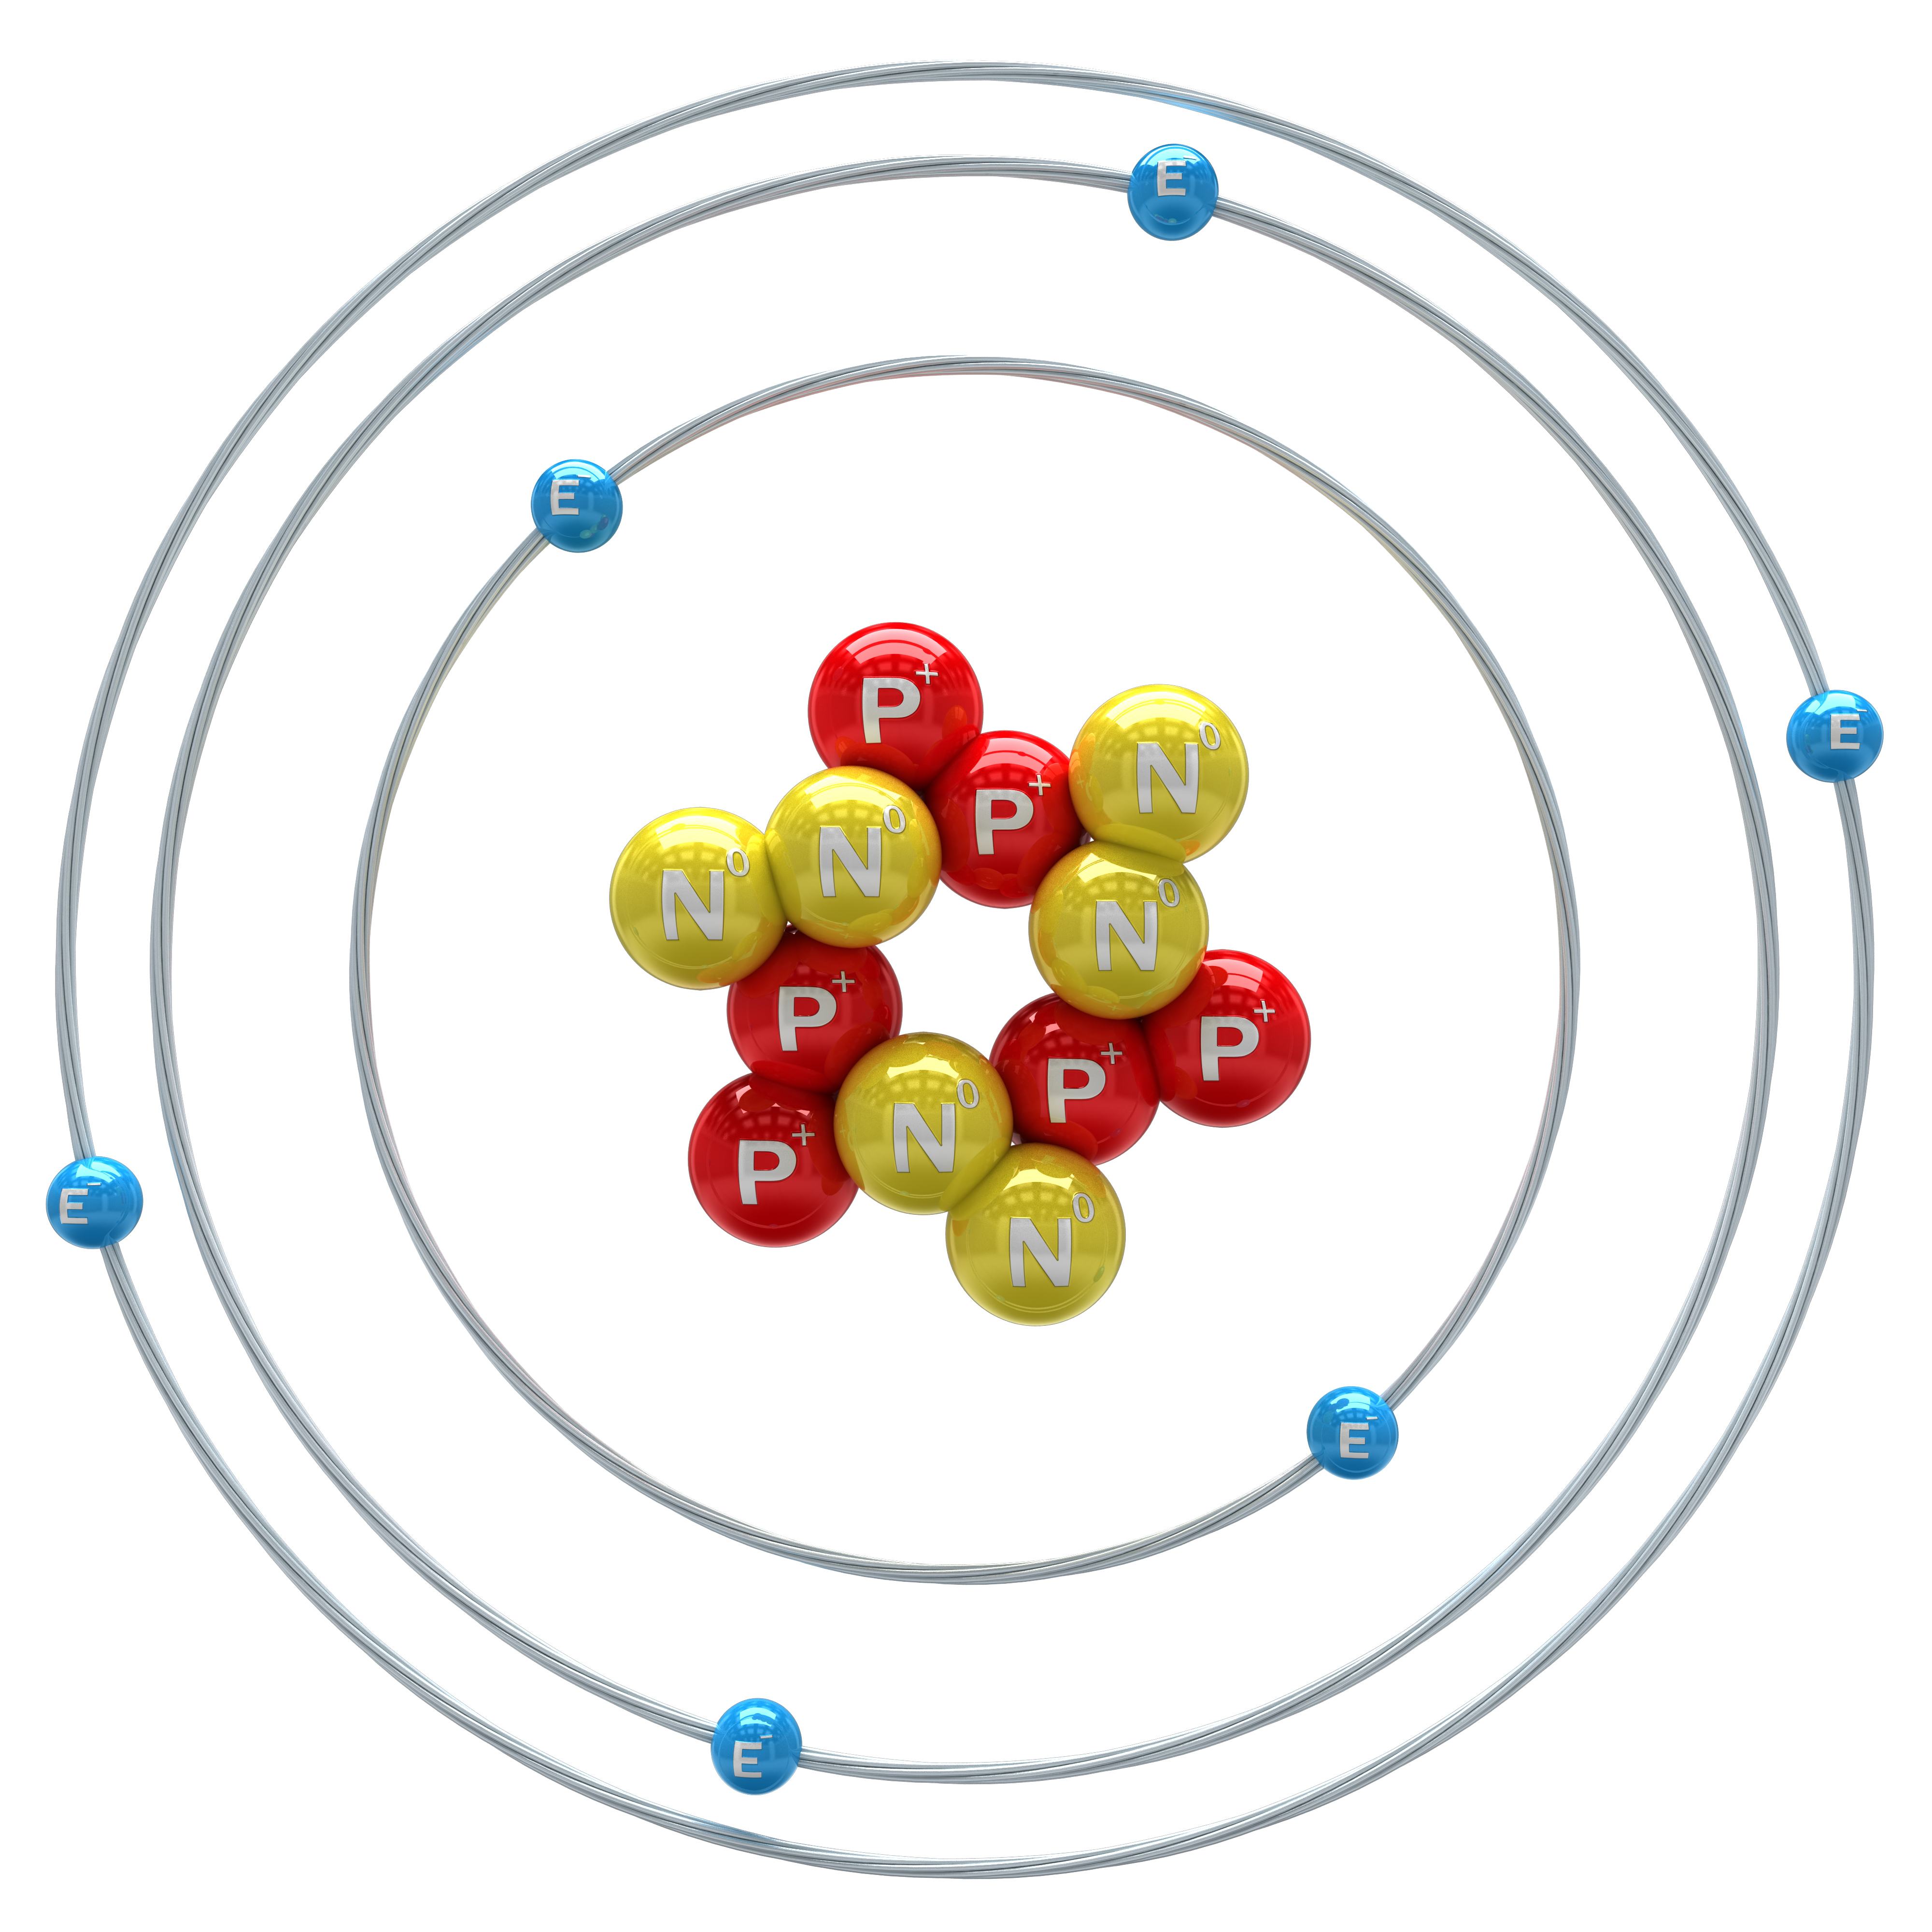 The Planetary or Solar System Model of Atom - Pics about space